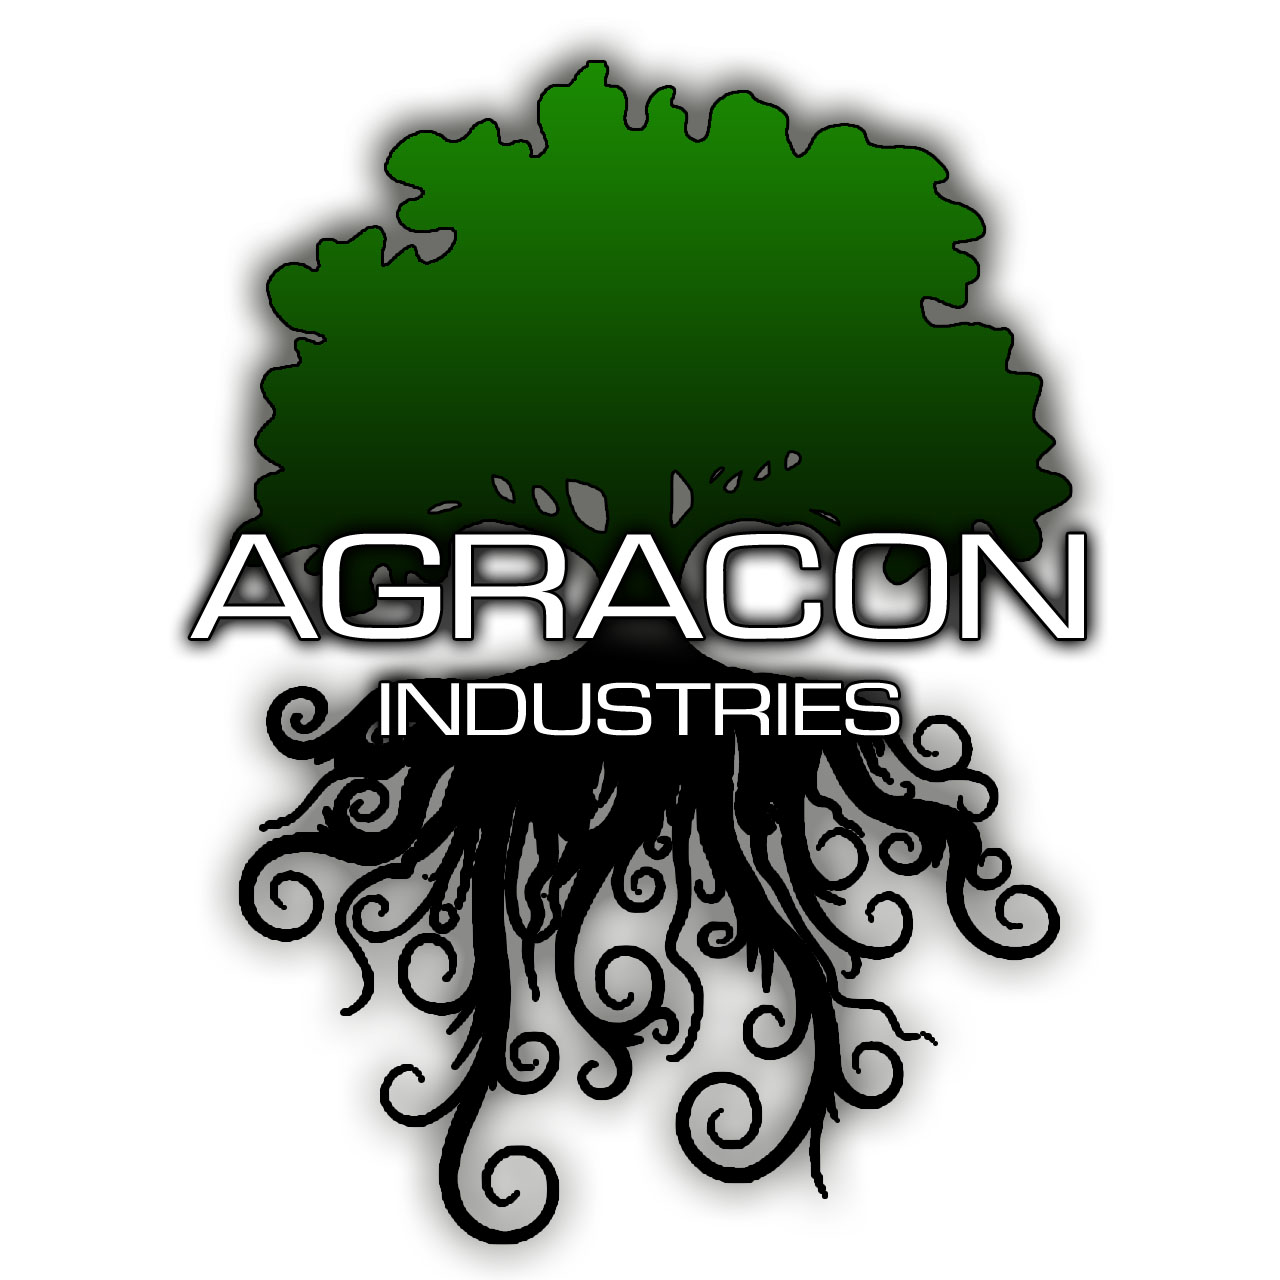 Agracon Industries